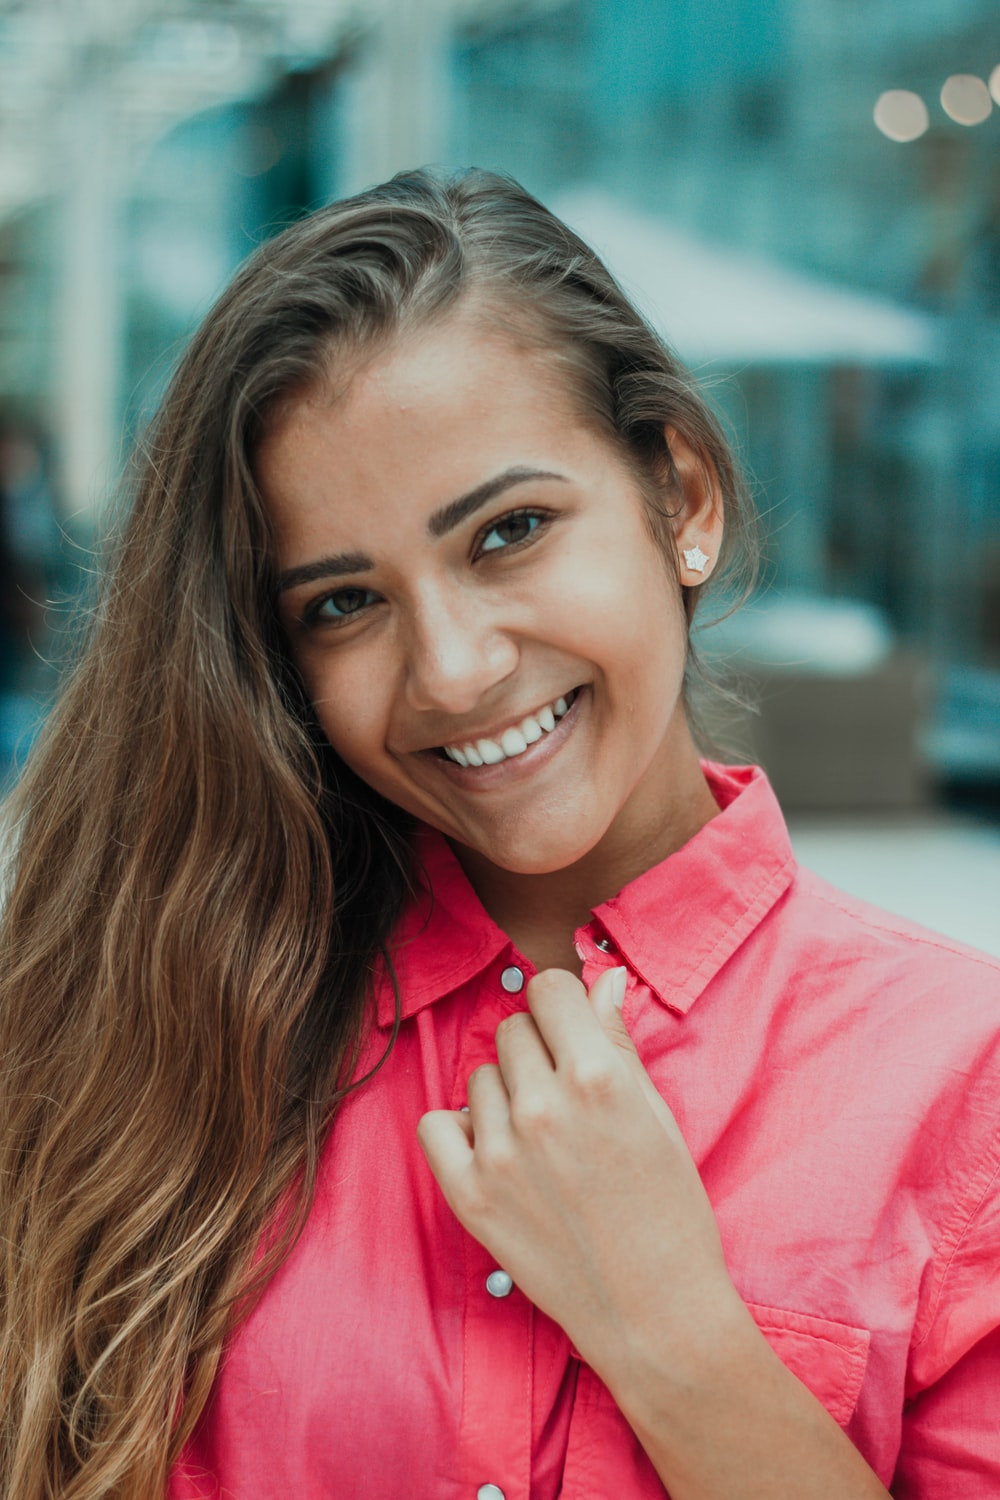 selective focus photography of woman wearing red button-up collared top while smiling